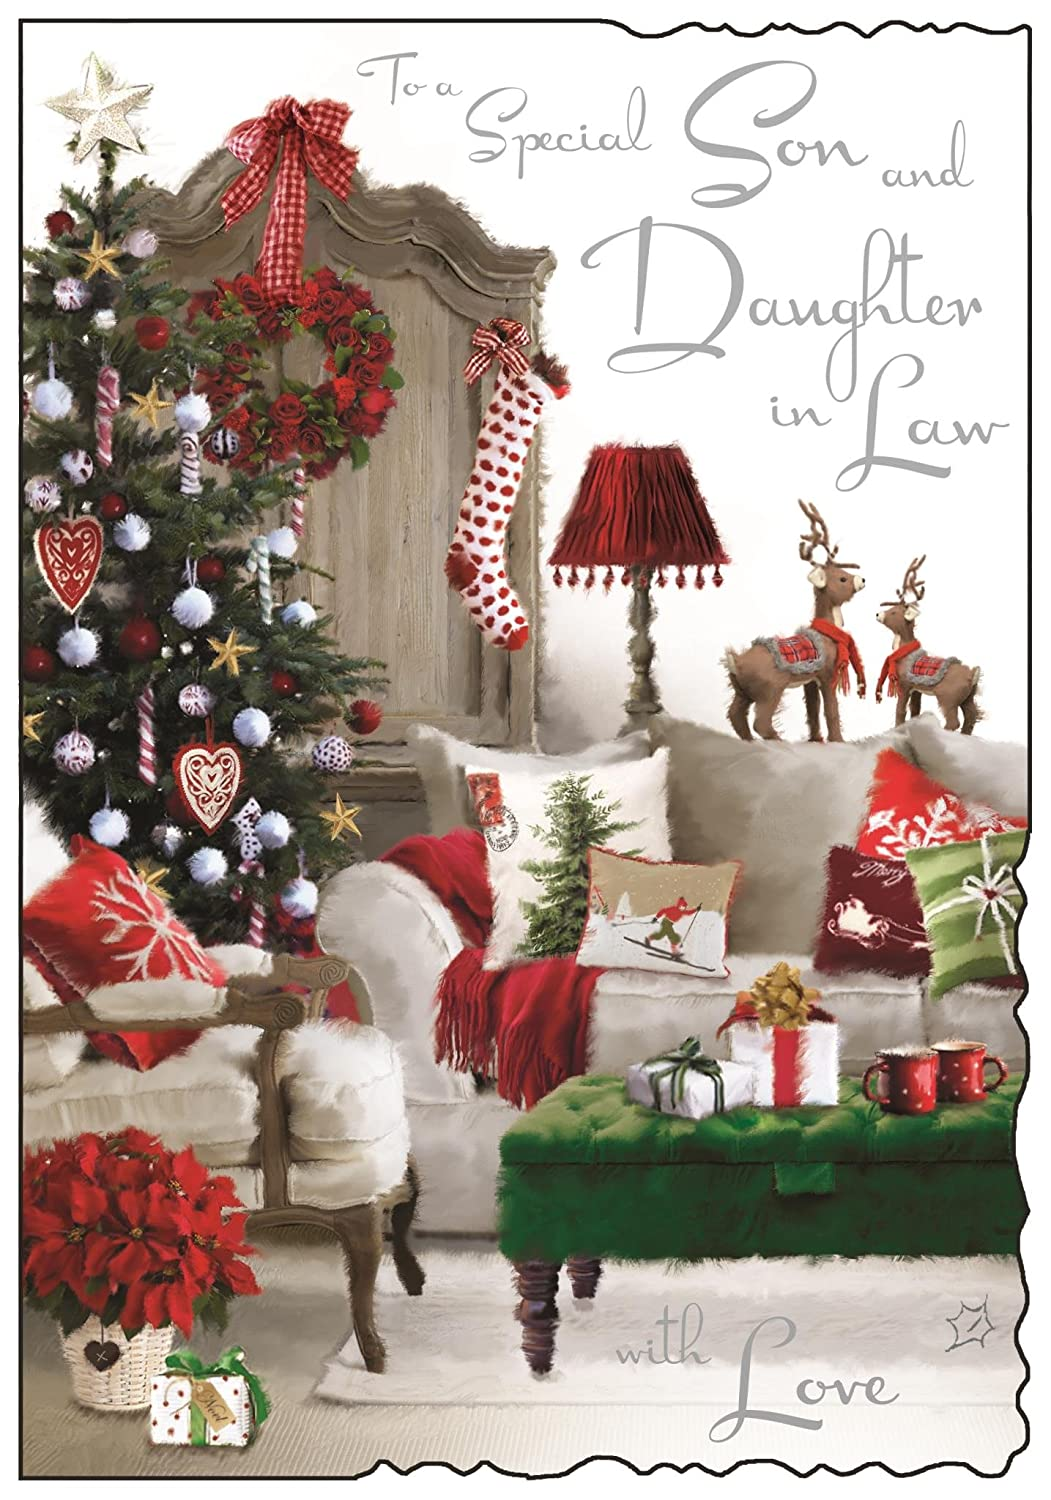 Christmas Card (JJ5594) Special Son and Daughter in Law - Xmas Tree and Presents in Living Room - Velvet Wishes Jonny Javelin